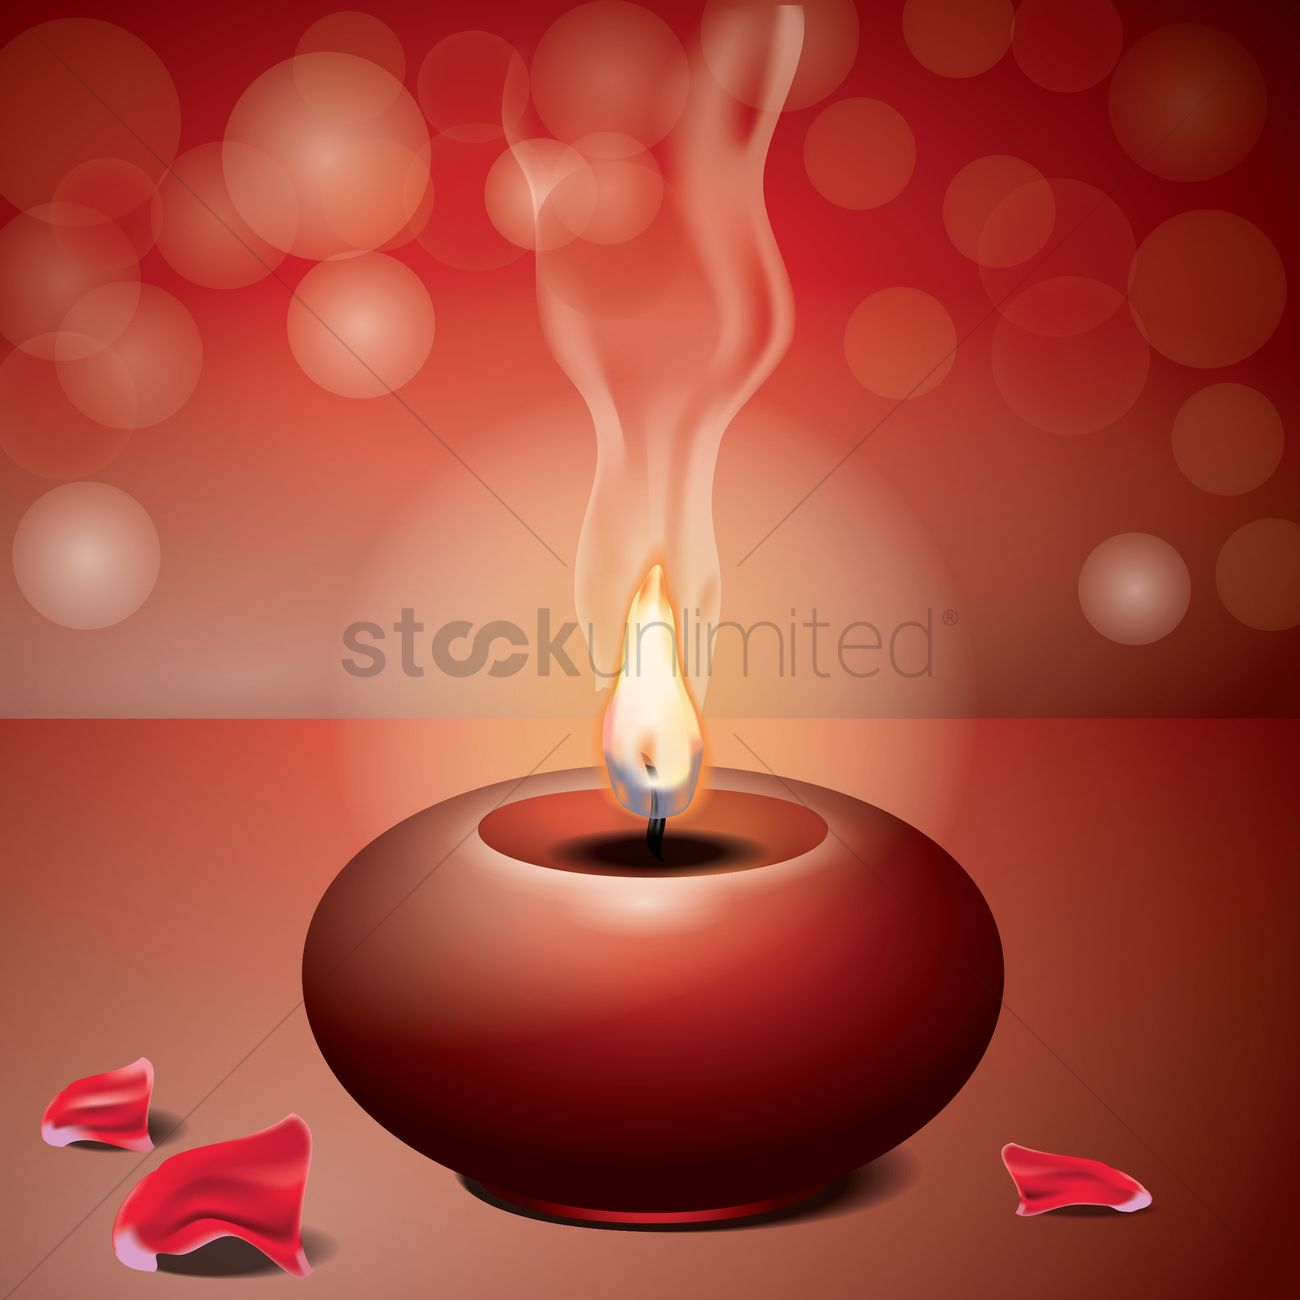 Spa candle wallpaper Vector Image - 1810634 | StockUnlimited for Heart Candle Wallpaper  269ane